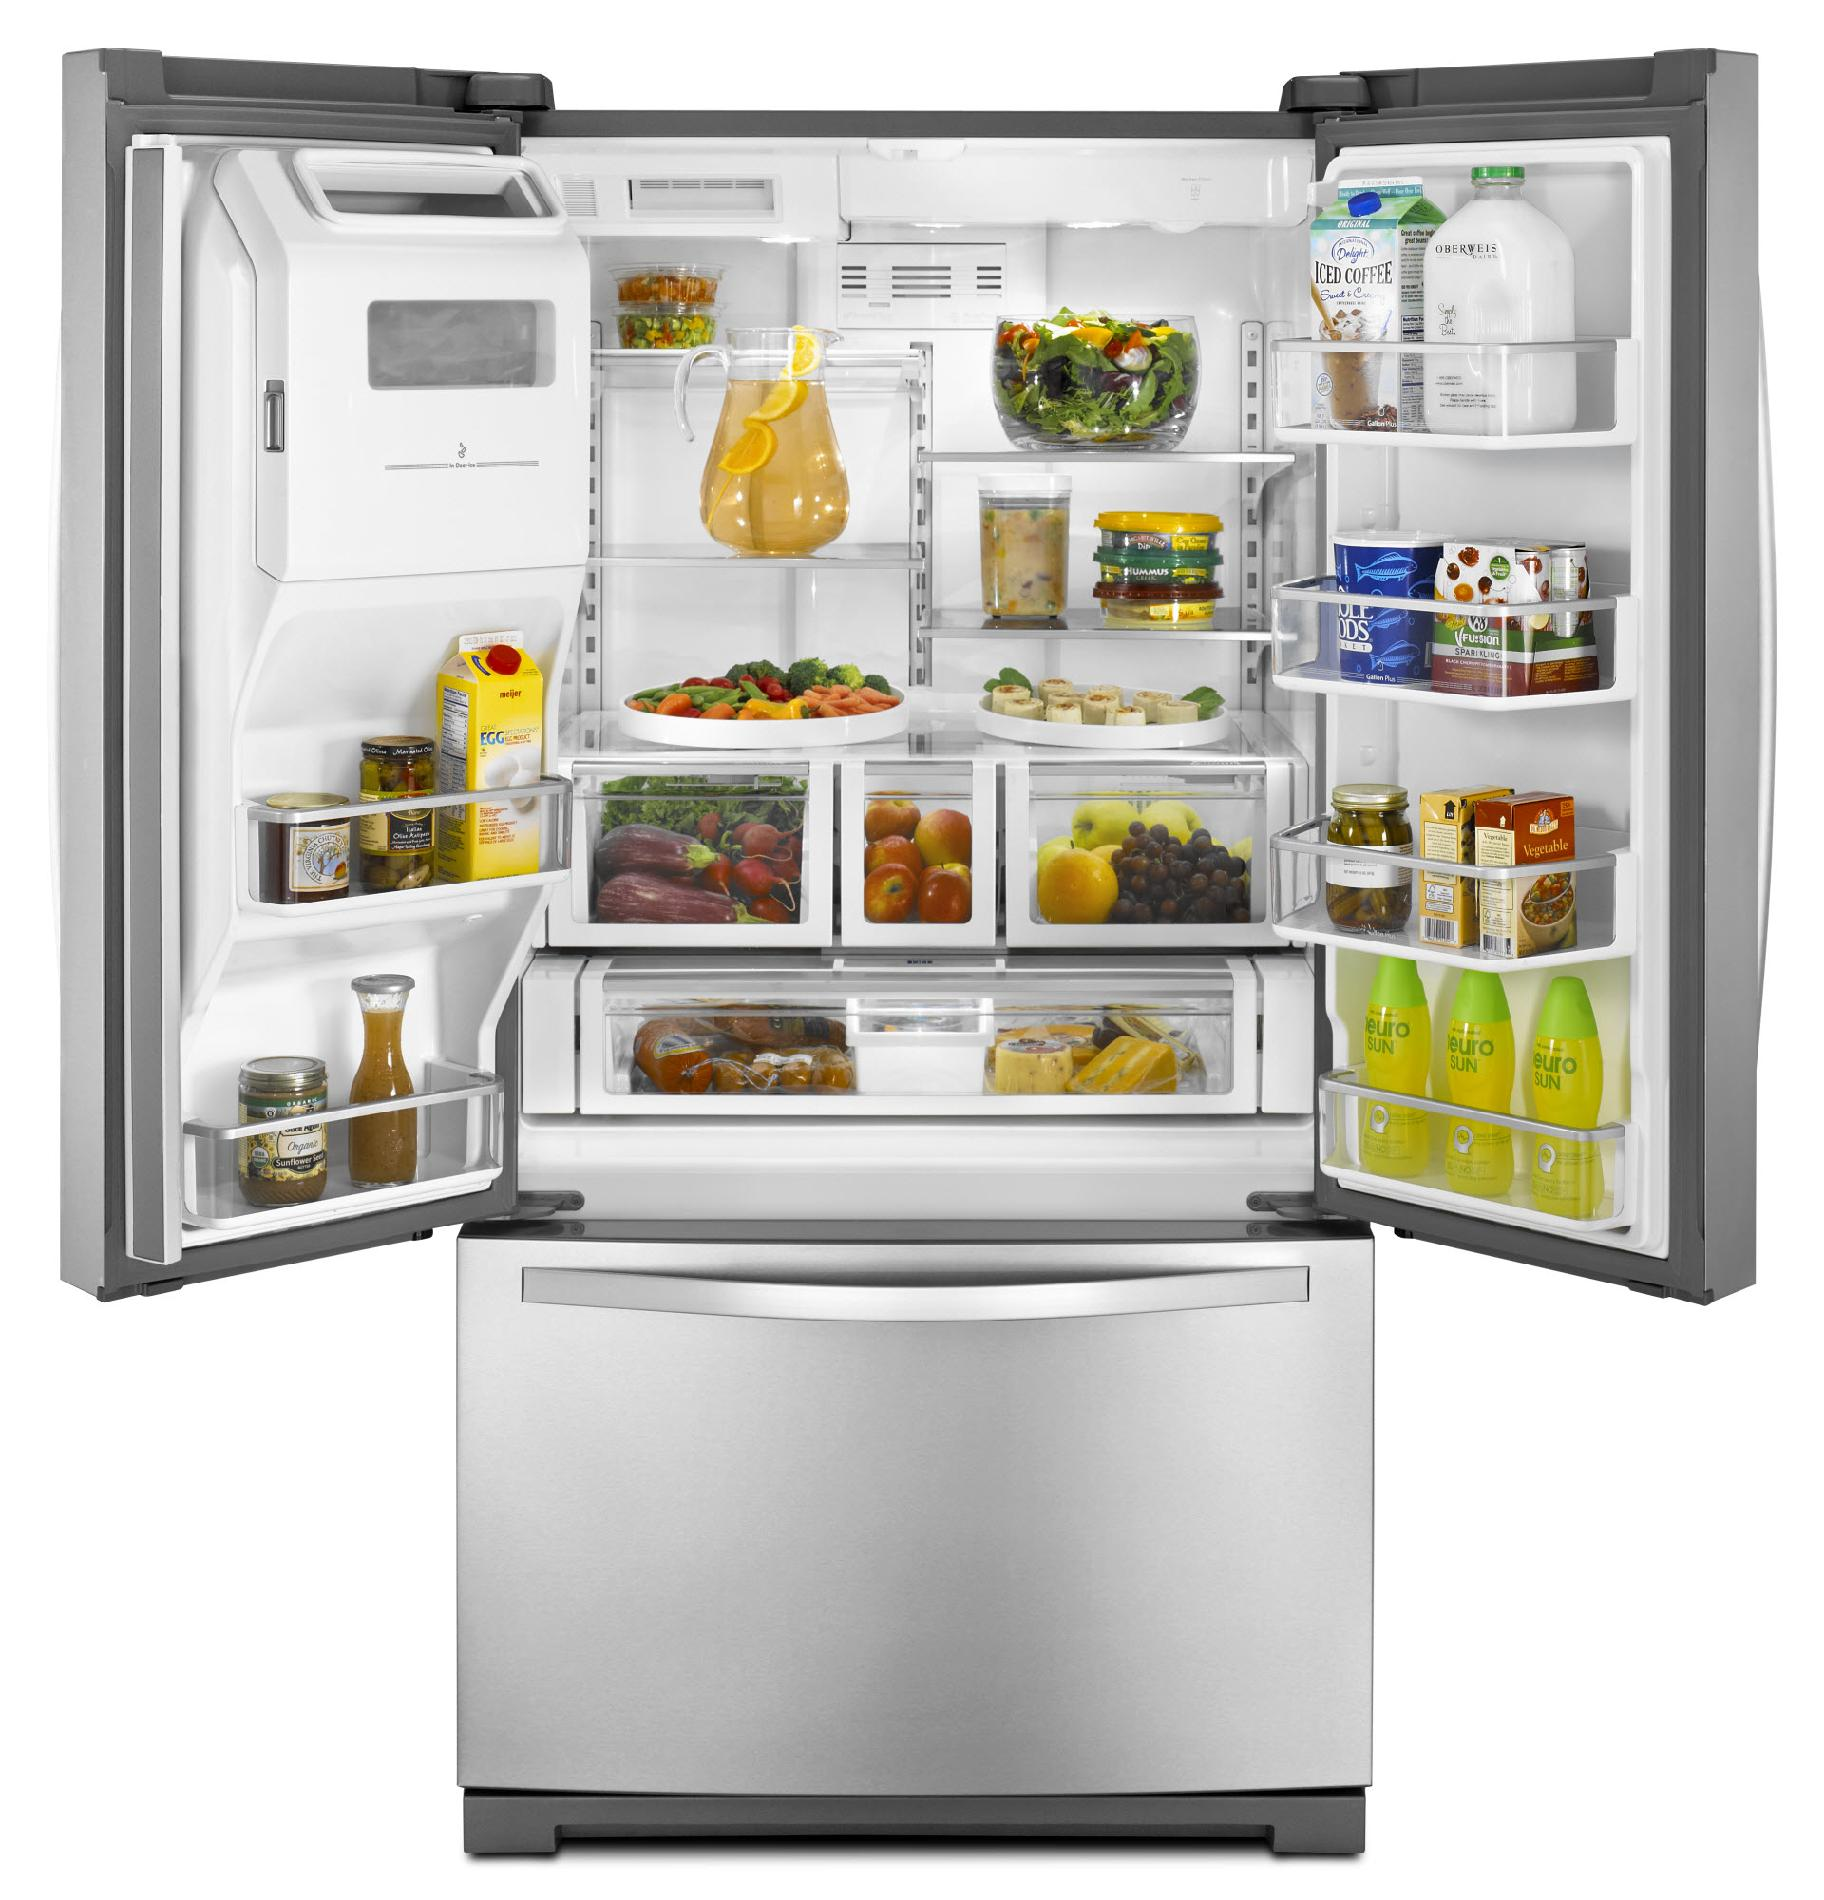 Whirlpool 28.6 cu. ft. French Door Refrigerator  - Stainless Steel